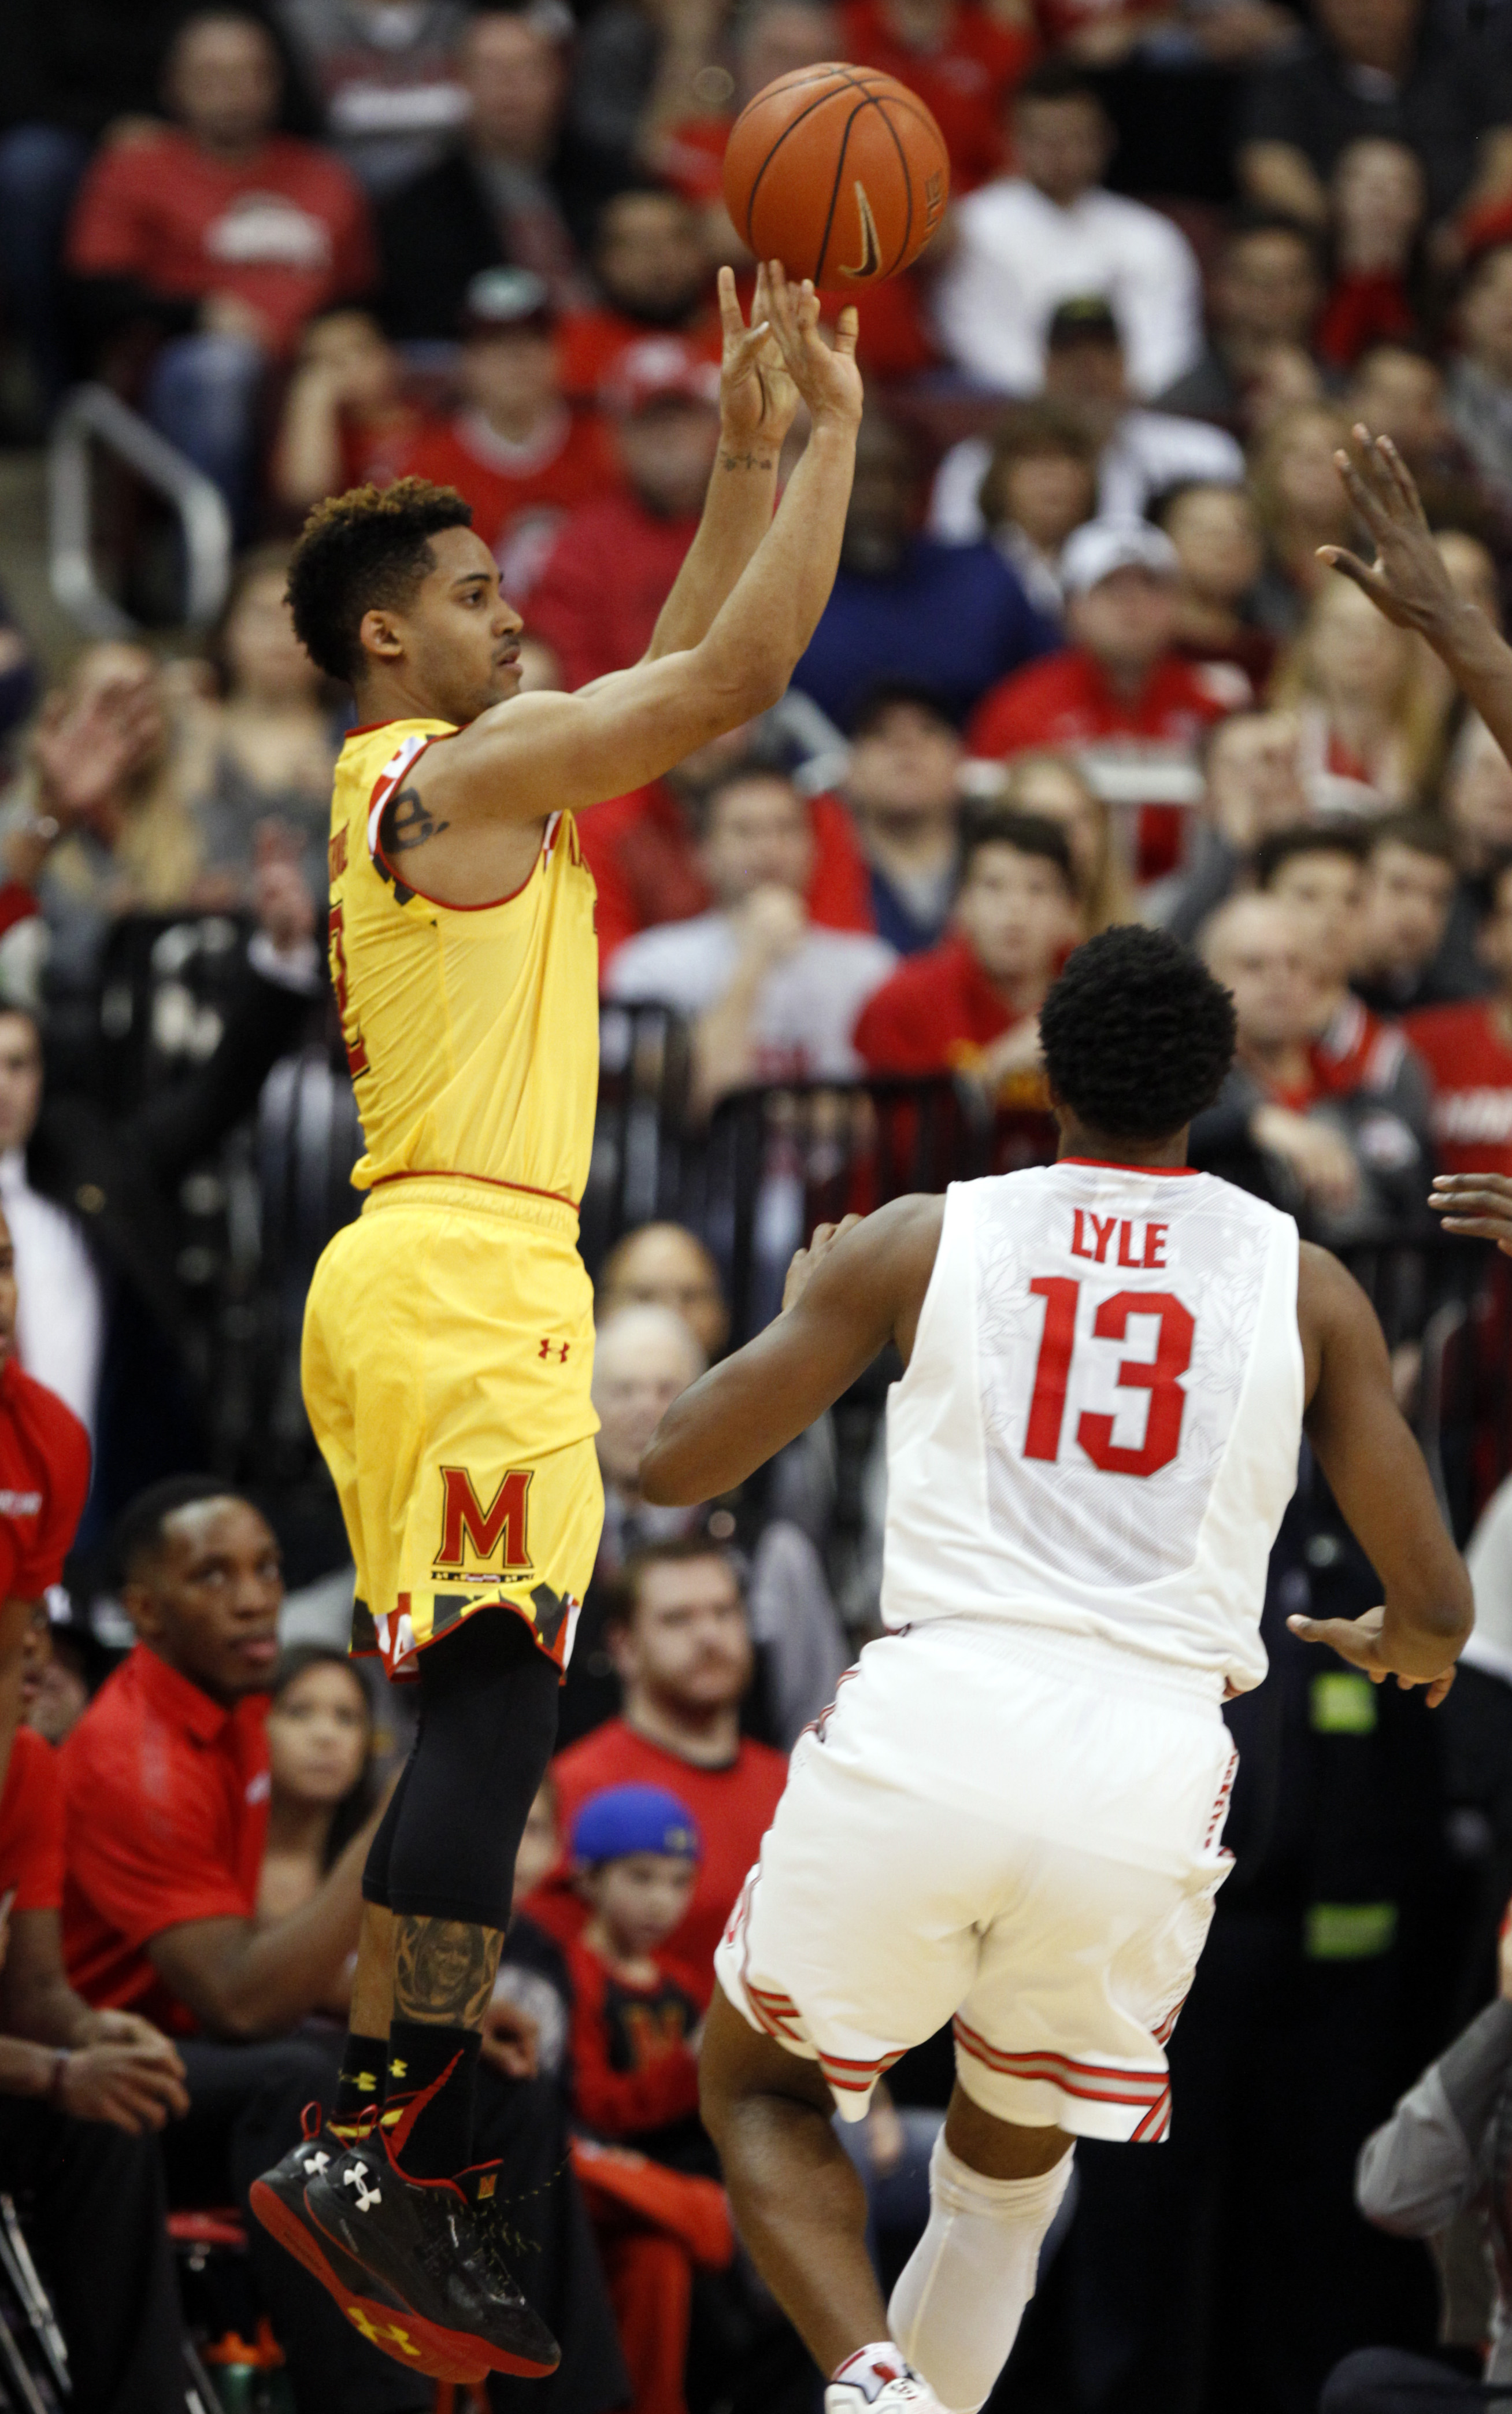 Maryland's Melo Trimble, left, goes up to shoot over Ohio State's JaQuan Lyle during the second half of an NCAA college basketball game in Columbus, Ohio, Sunday, Jan. 31, 2016. Maryland won 66-61. (AP Photo/Paul Vernon)